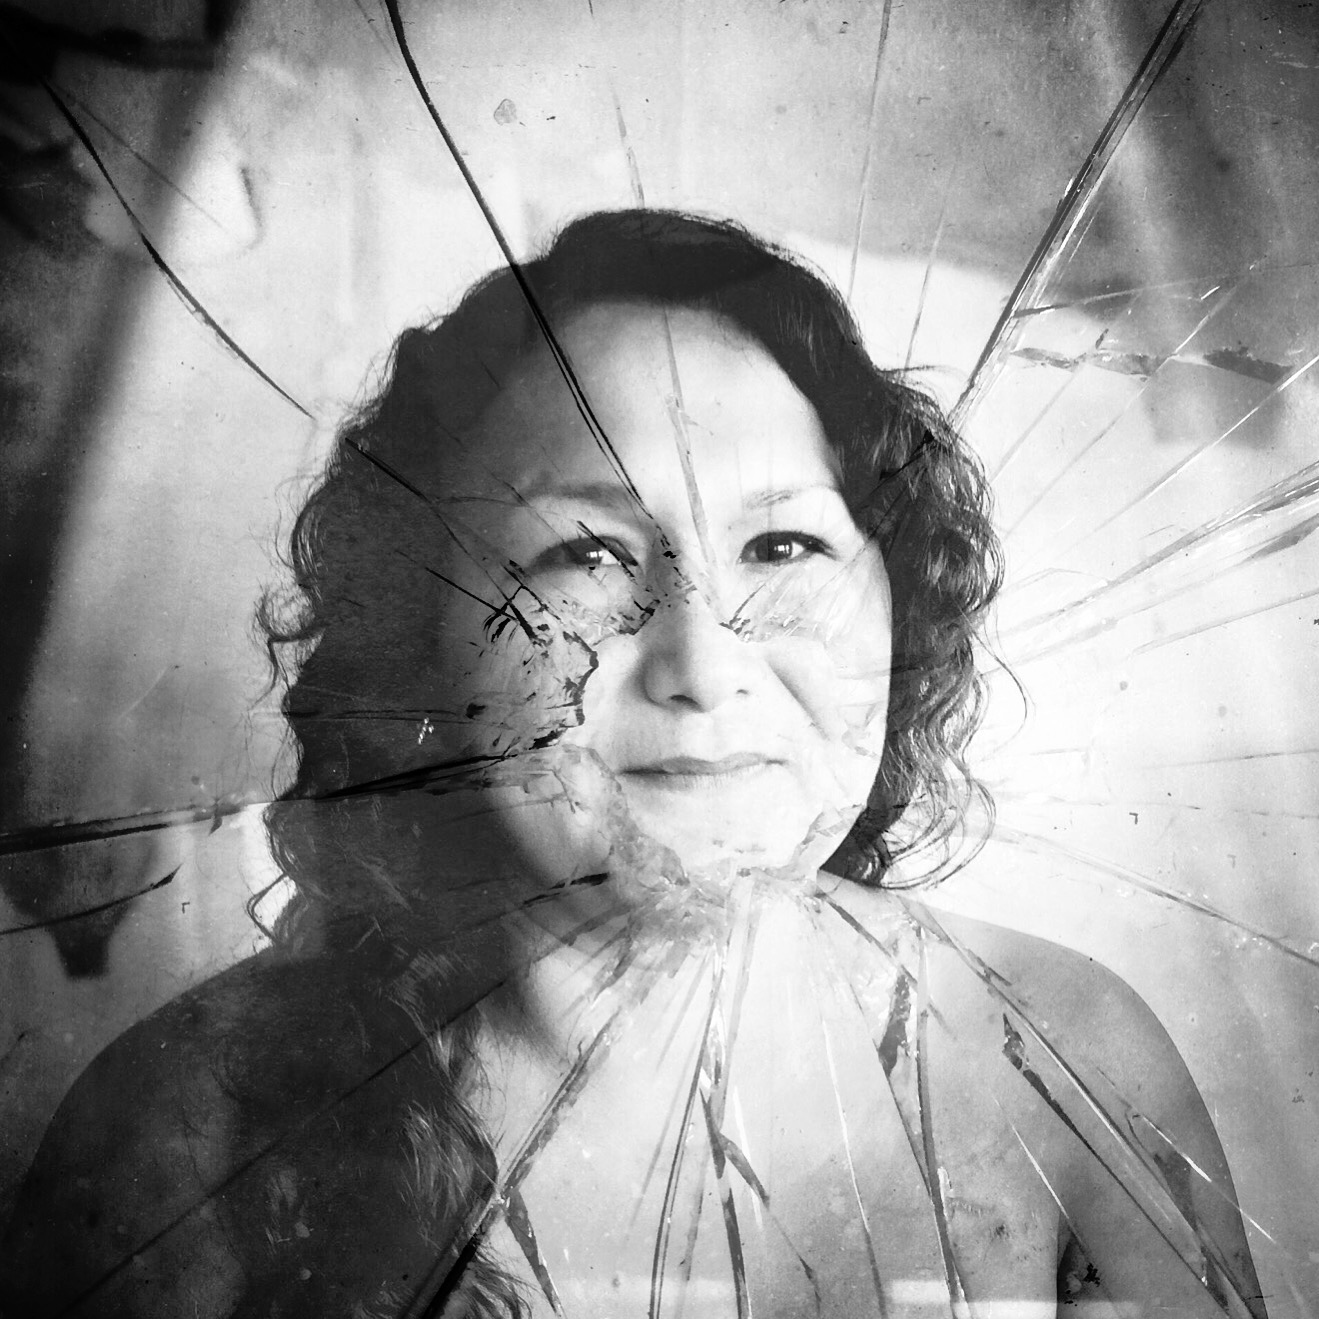 This is Jaime Rockthunder, who went to the Qu'Appelle Indian Residential School from 1990-1994. She says she was sexually assaulted during her time there, and that her younger brother was raped by a classmate.  He finally told me about it, almost 20 years later, and he blamed me. All he could say is, 'Why didn't you protect me?'